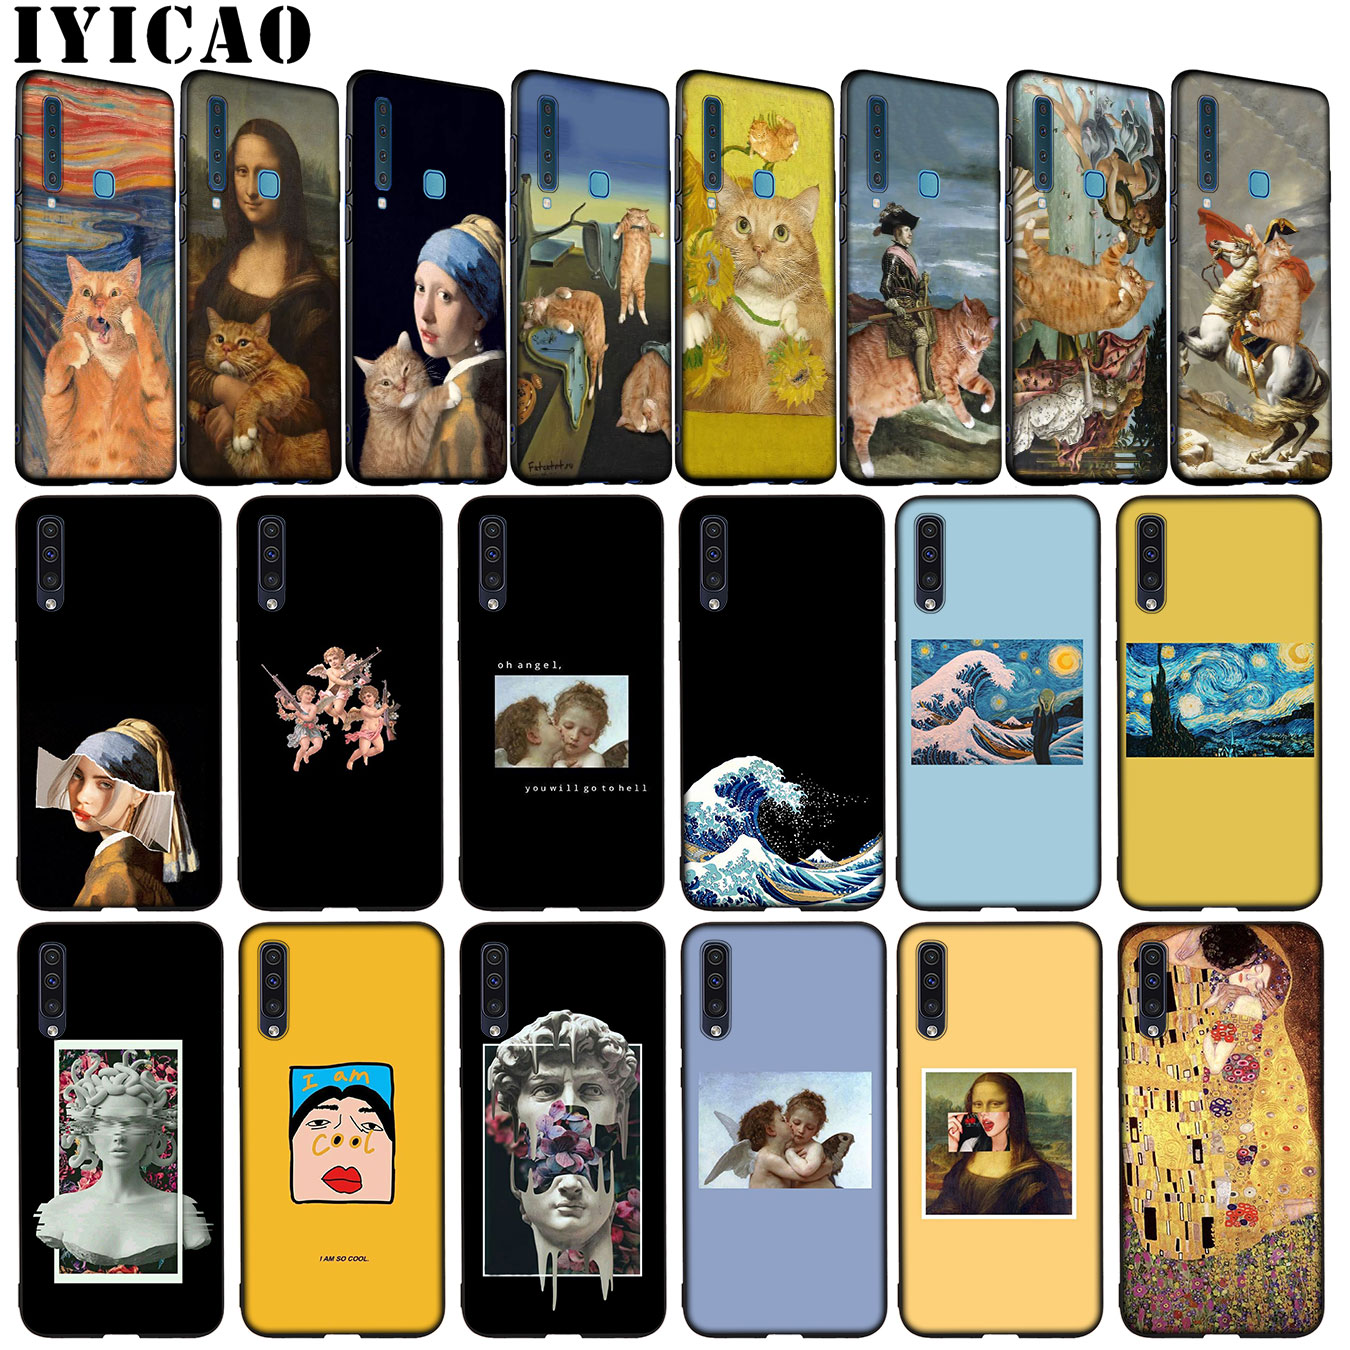 Leonardo da Vinci Mona Lisa <font><b>Cat</b></font> David Great van Gogh Soft <font><b>Case</b></font> for <font><b>Samsung</b></font> <font><b>Galaxy</b></font> A6 A9 <font><b>A8</b></font> A7 <font><b>2018</b></font> A3 A5 2017 Note 9 8 10 Plus + image